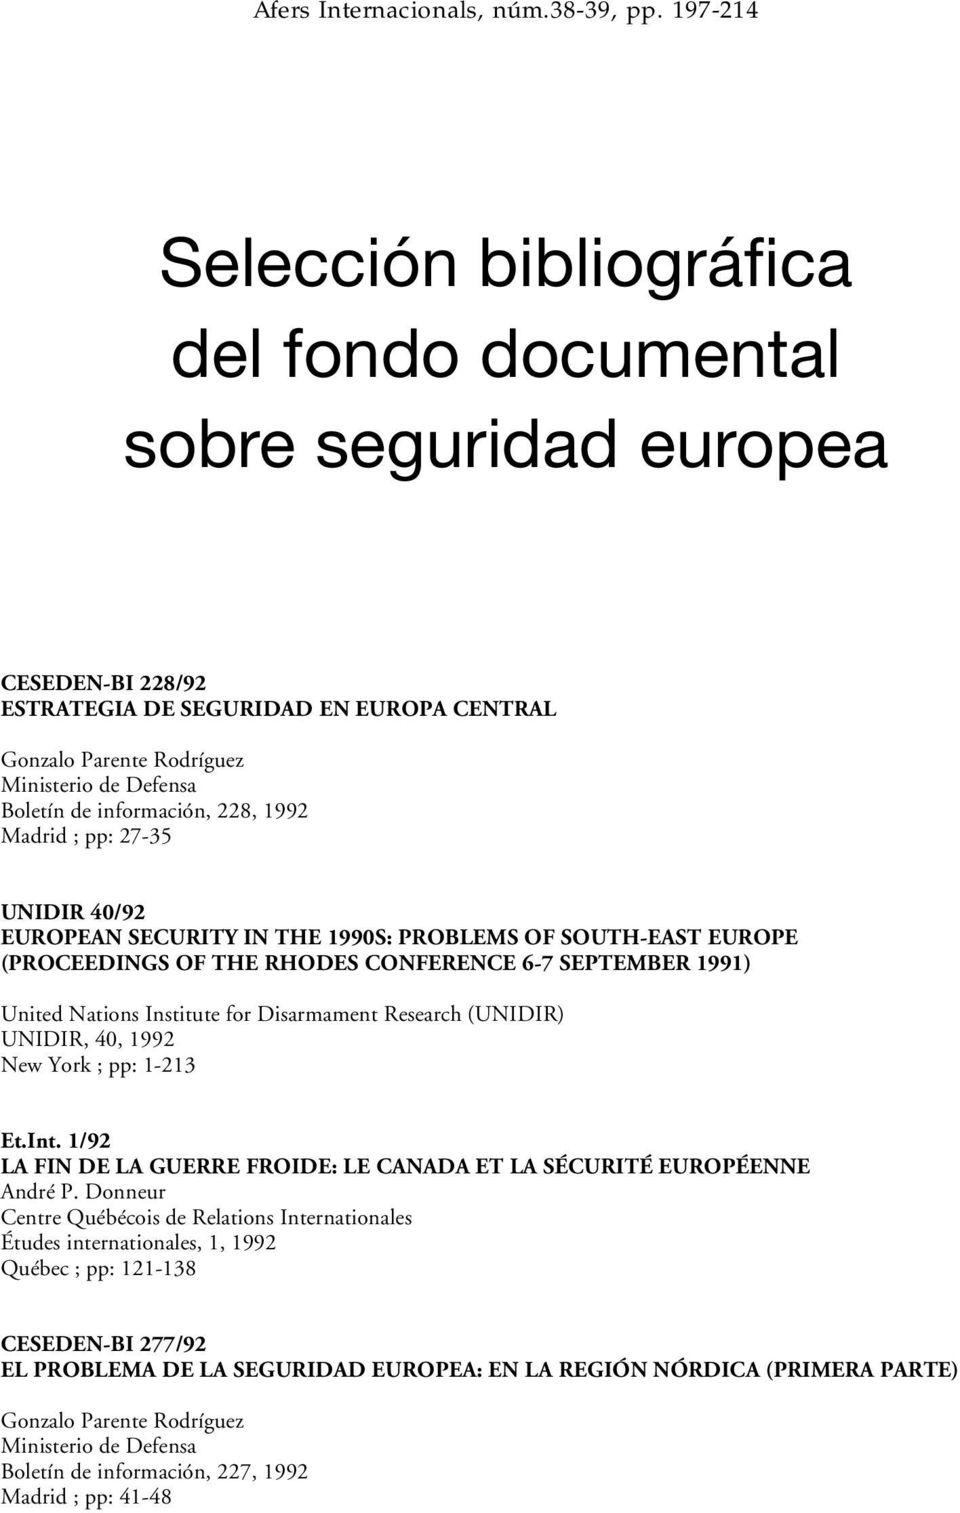 Madrid ; pp: 27-35 UNIDIR 40/92 EUROPEAN SECURITY IN THE 1990S: PROBLEMS OF SOUTH-EAST EUROPE (PROCEEDINGS OF THE RHODES CONFERENCE 6-7 SEPTEMBER 1991) United Nations Institute for Disarmament